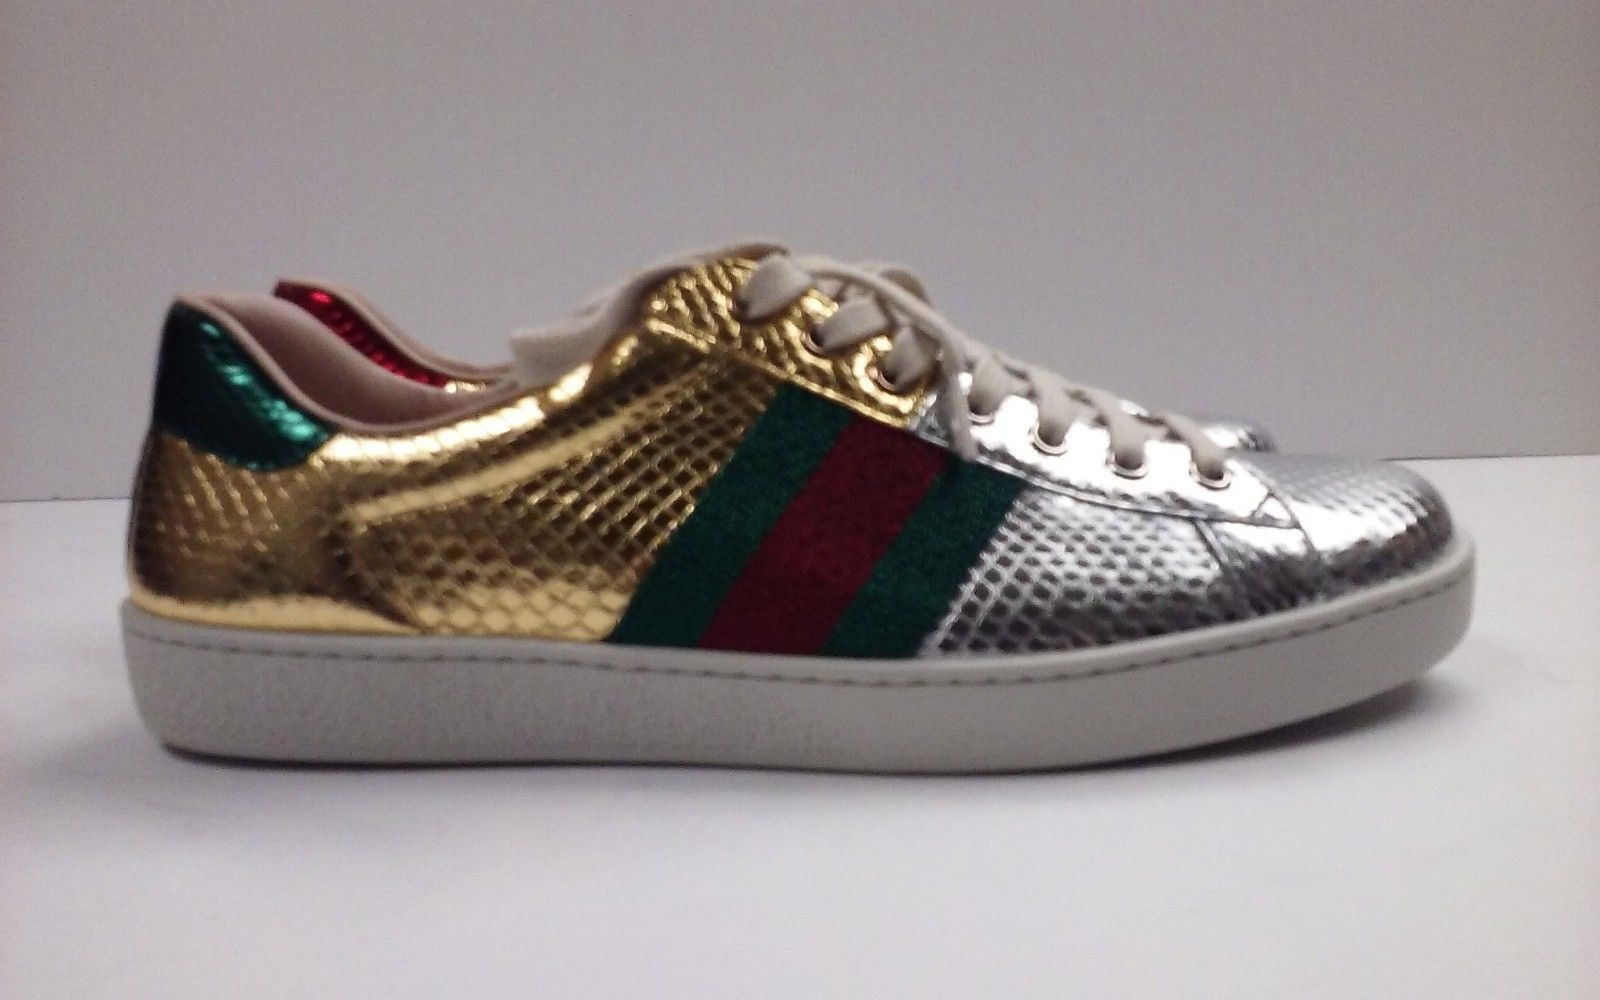 71ecabd09e5 P-374311 New Gucci Ayers Lam Gold Silver Red Green Sneaker US